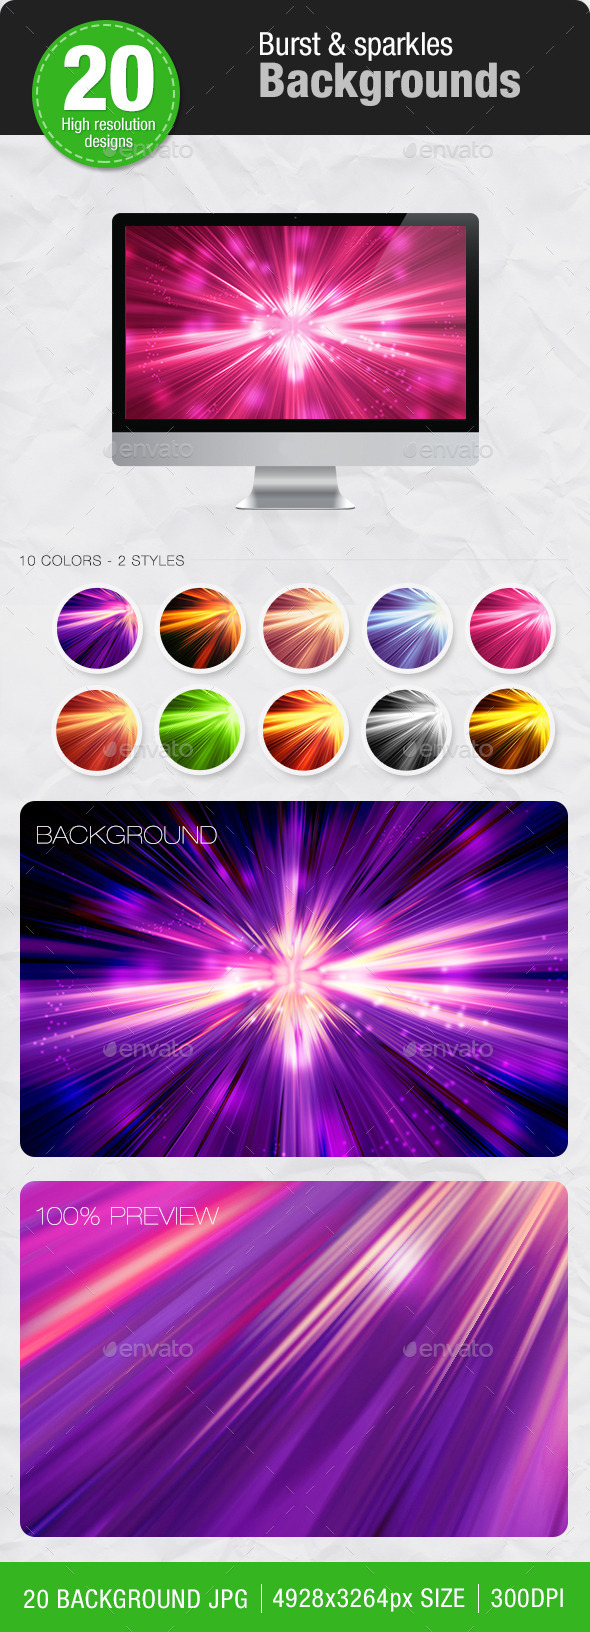 GraphicRiver 20 Burst & Sparkles Backgrounds 11363024